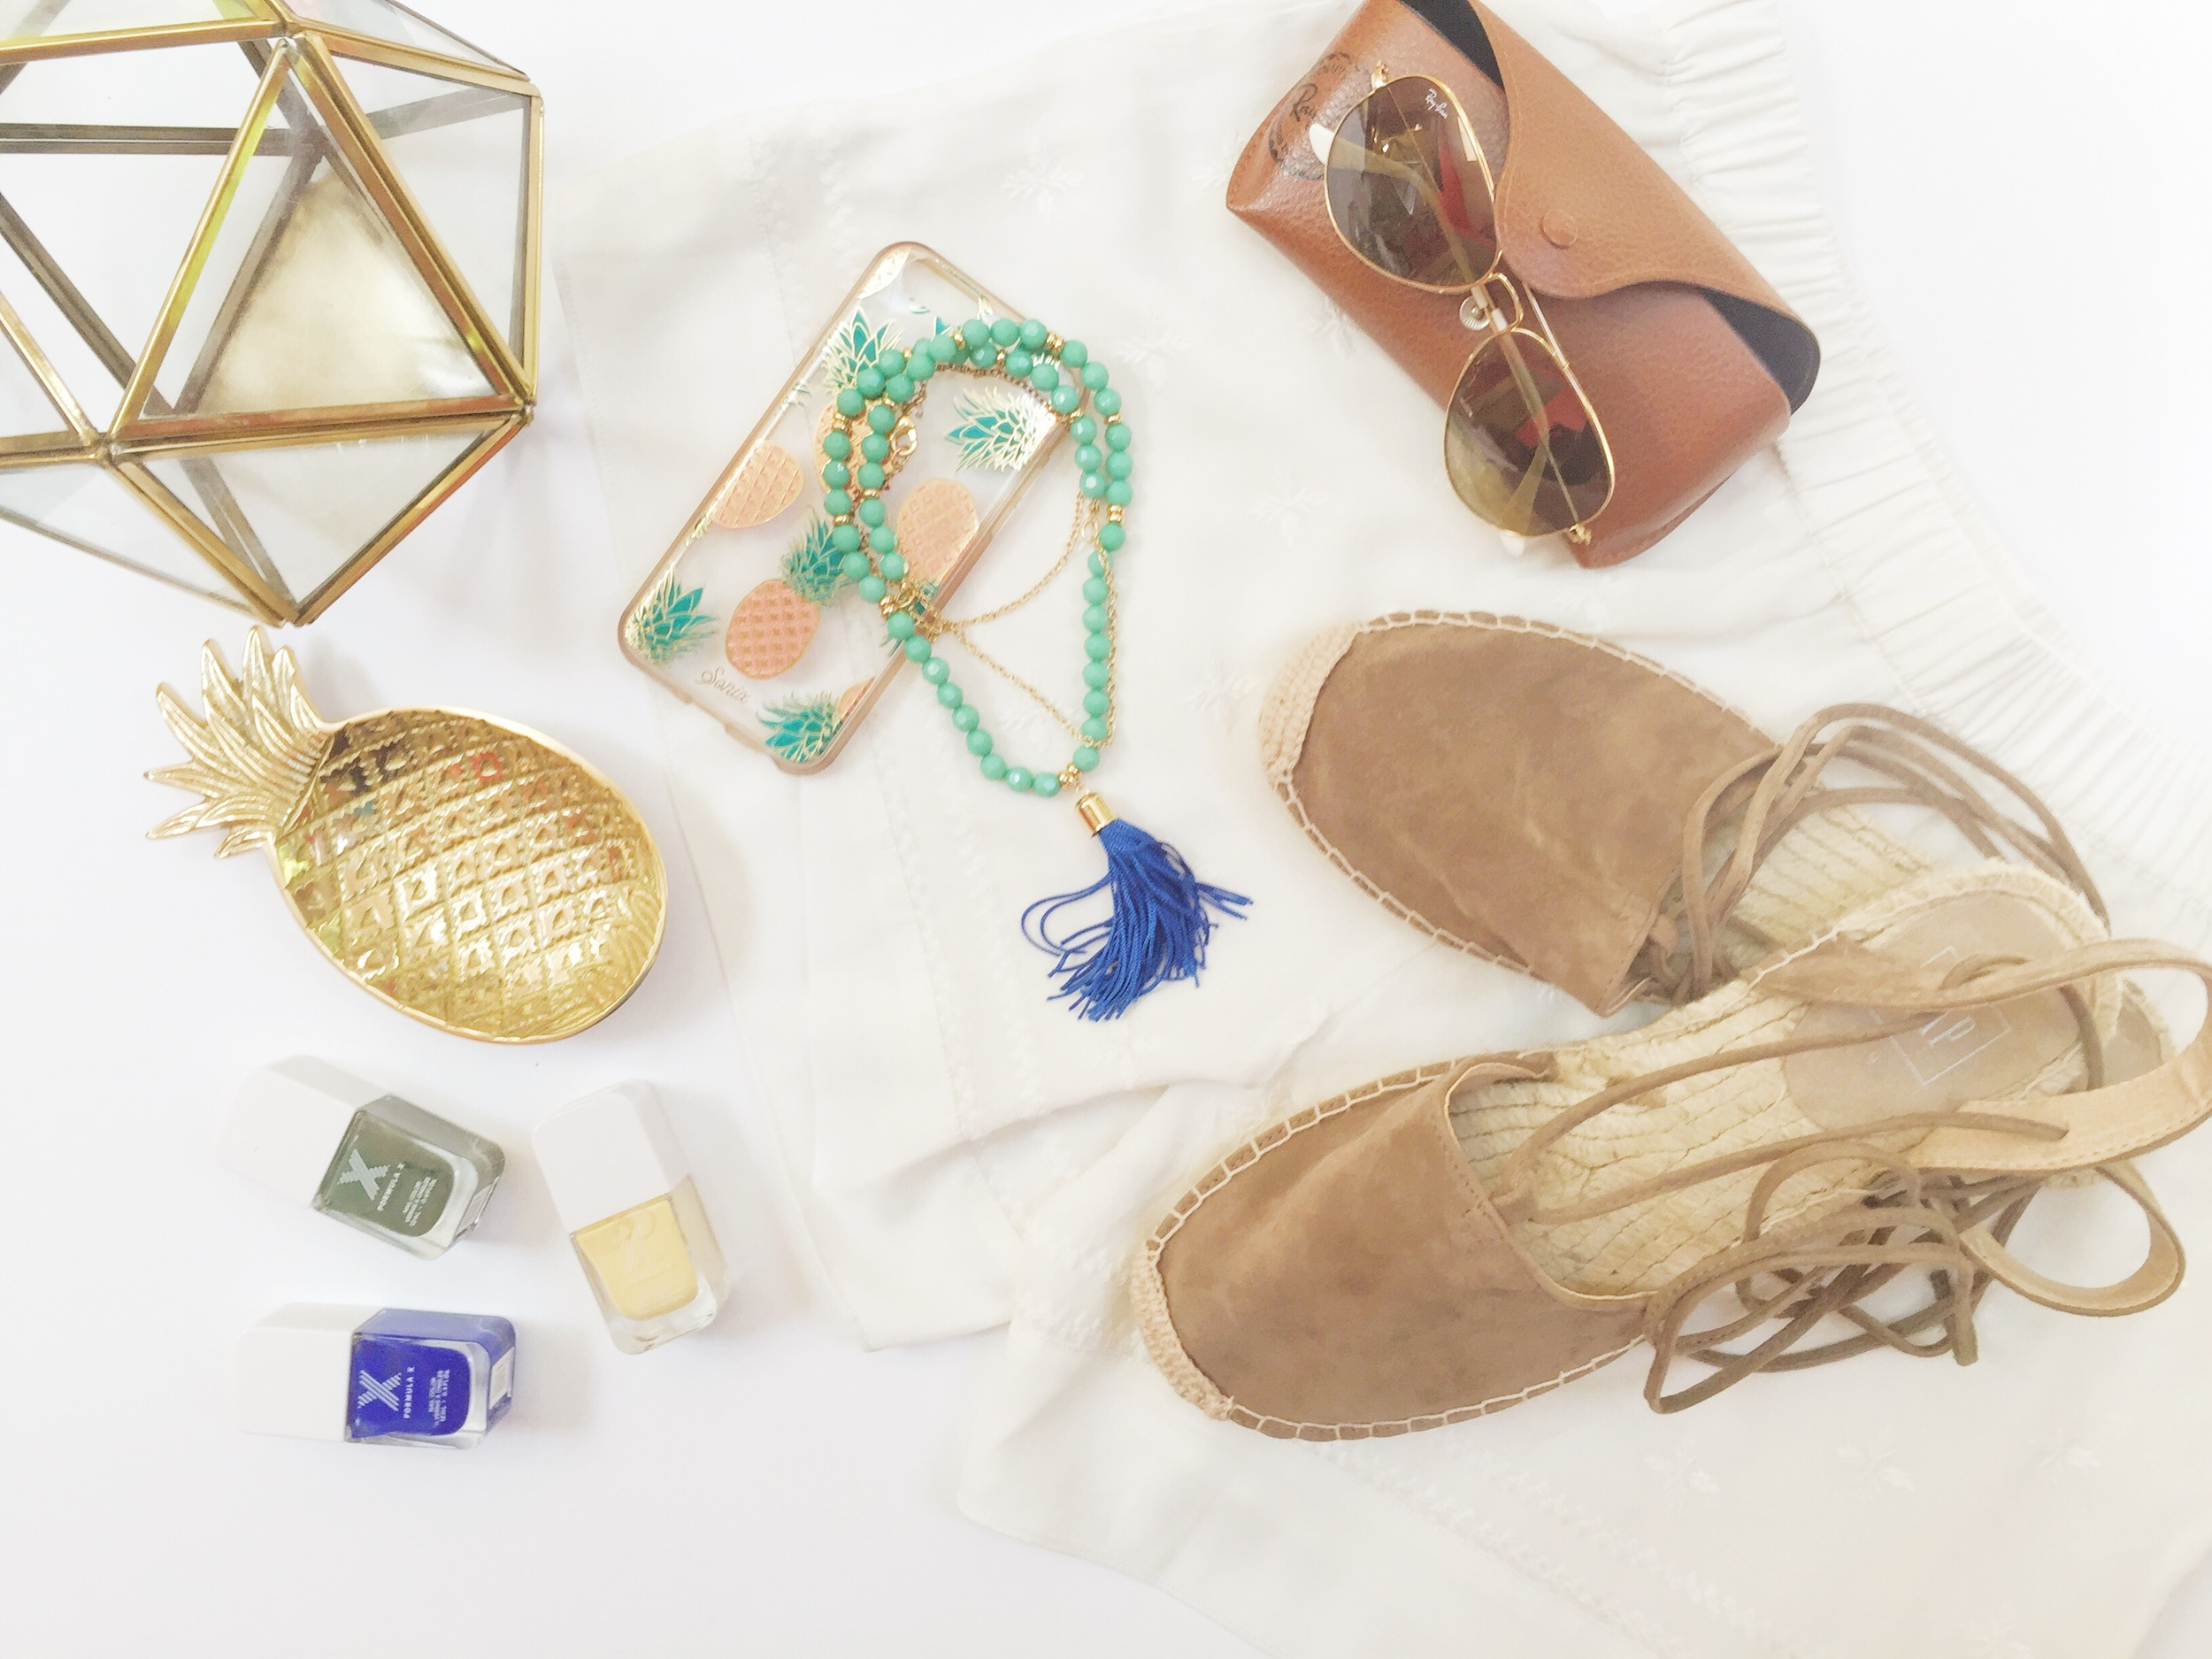 From top left to bottom right: (See bottom of post for a list of links to each item)Brass geo terrarium, pineapple phone case, beaded tassel necklace, aviators, pineapple trinket, nail varnish, embroidered shorts, lace up espadrilles.